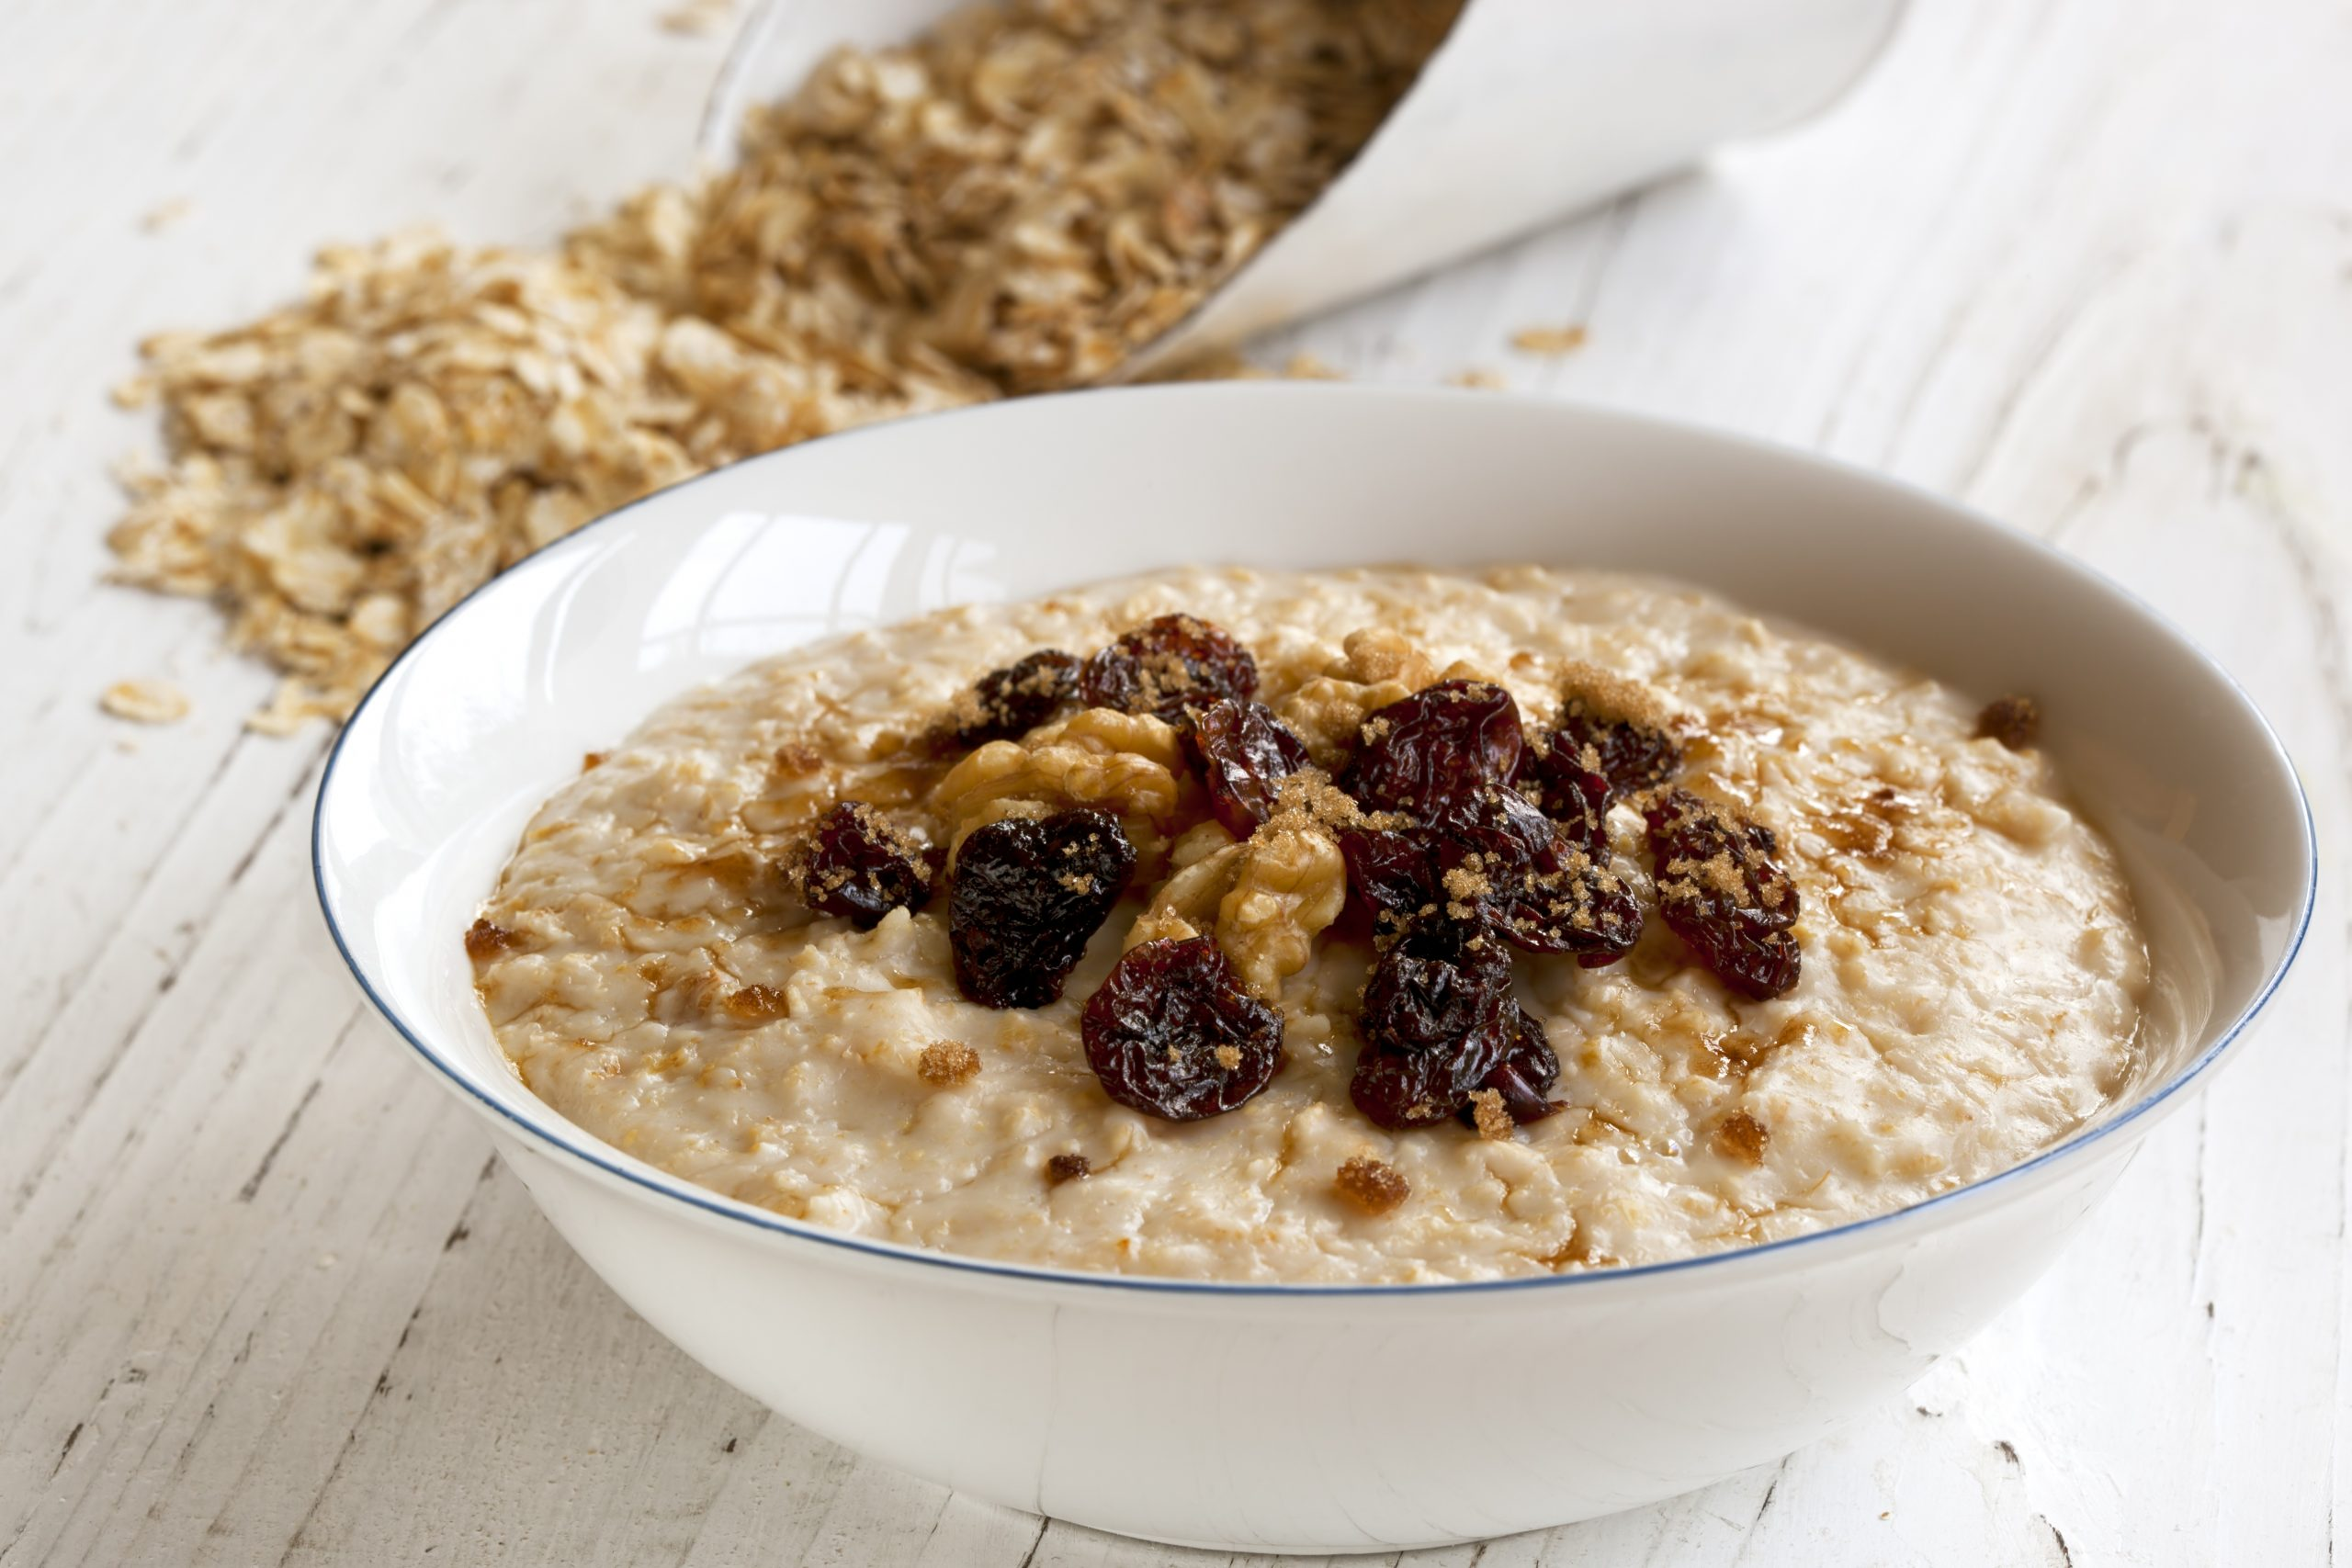 Porridge with walnuts, raisins and brown sugar.  Delicious oatmeal.